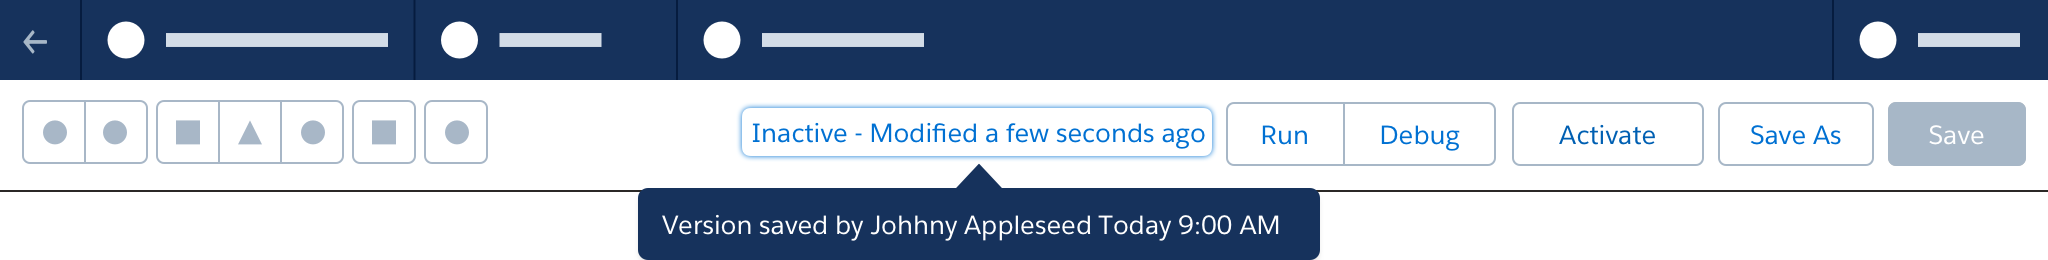 "A wireframe showing a tooltip communicating additional details about status, the tooltip text says ""Version saved by Johnny Appleseed Today 9:00 AM."""